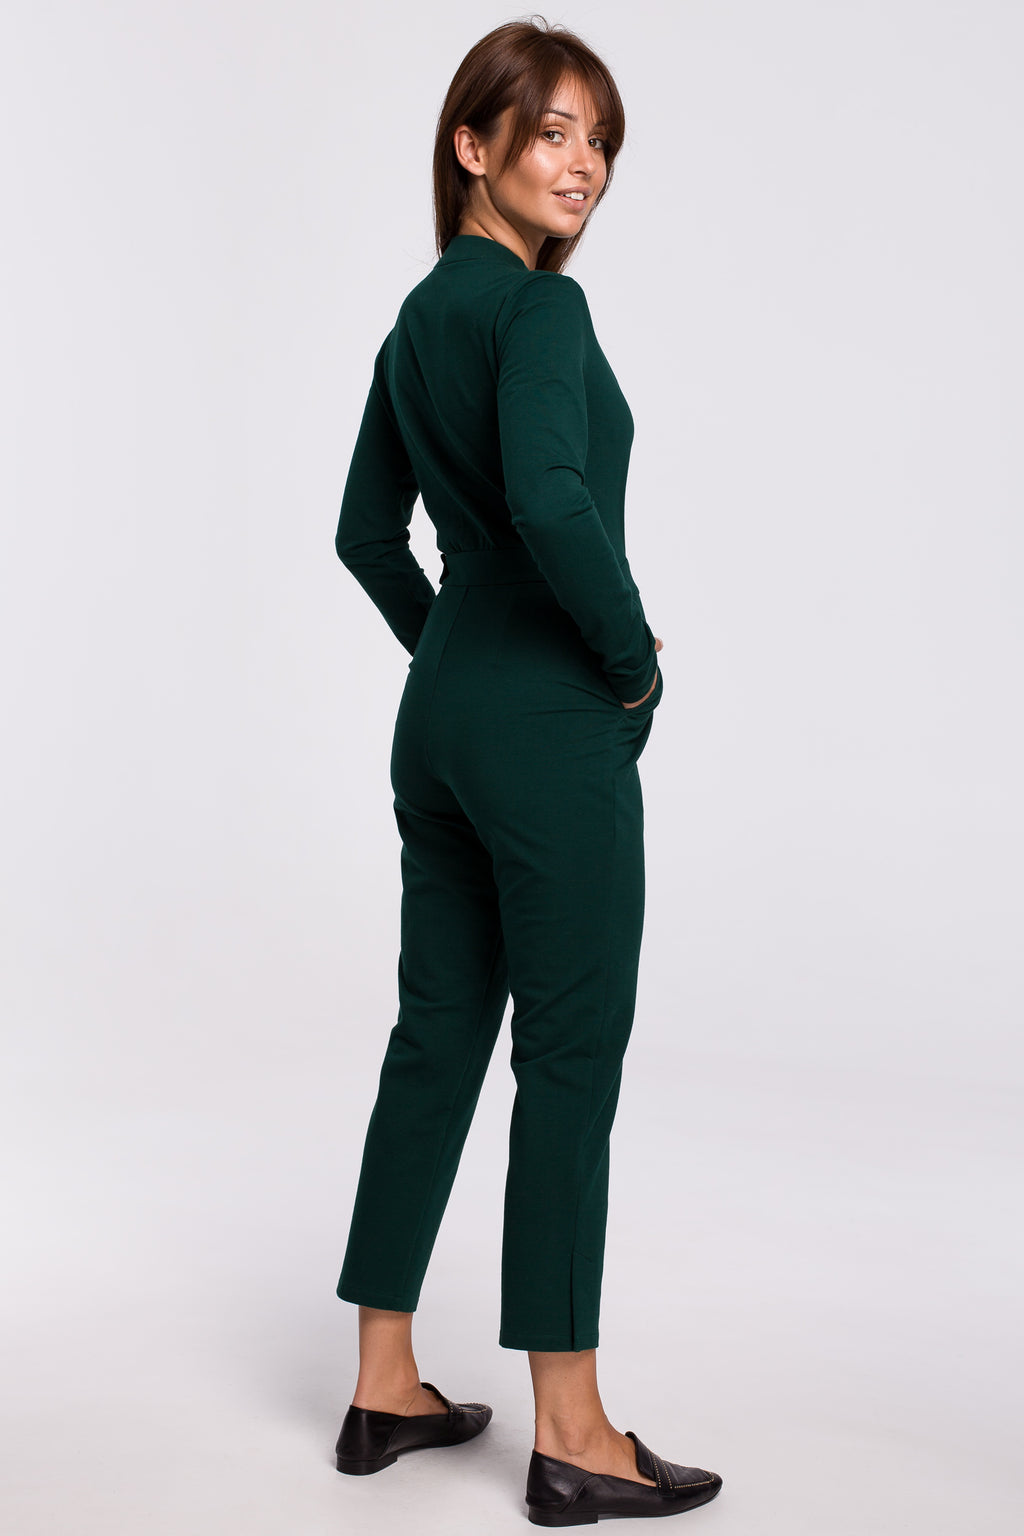 Green Wrap Front Top Jumpsuit With A Buckle - So Chic Boutique